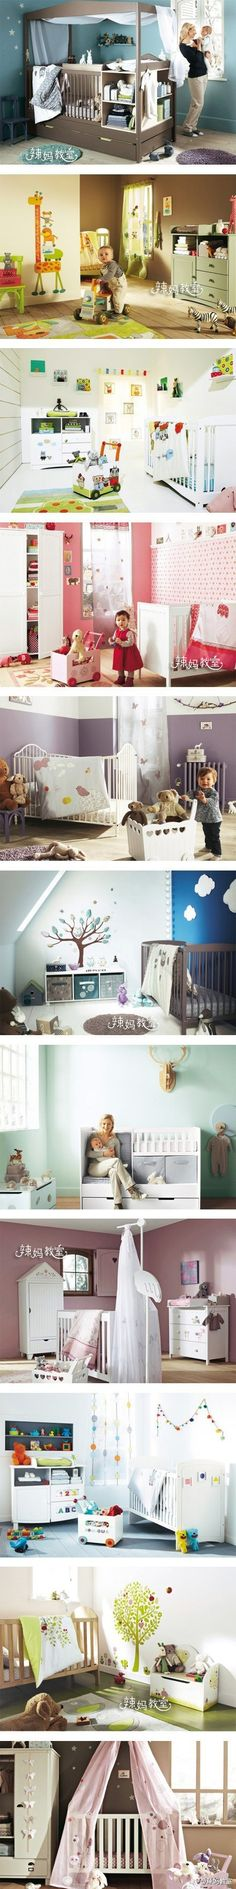 nursey ... i like the all in one crib (1st pic) and i like the all in one changing station idea (7th pic).. great use of space!!